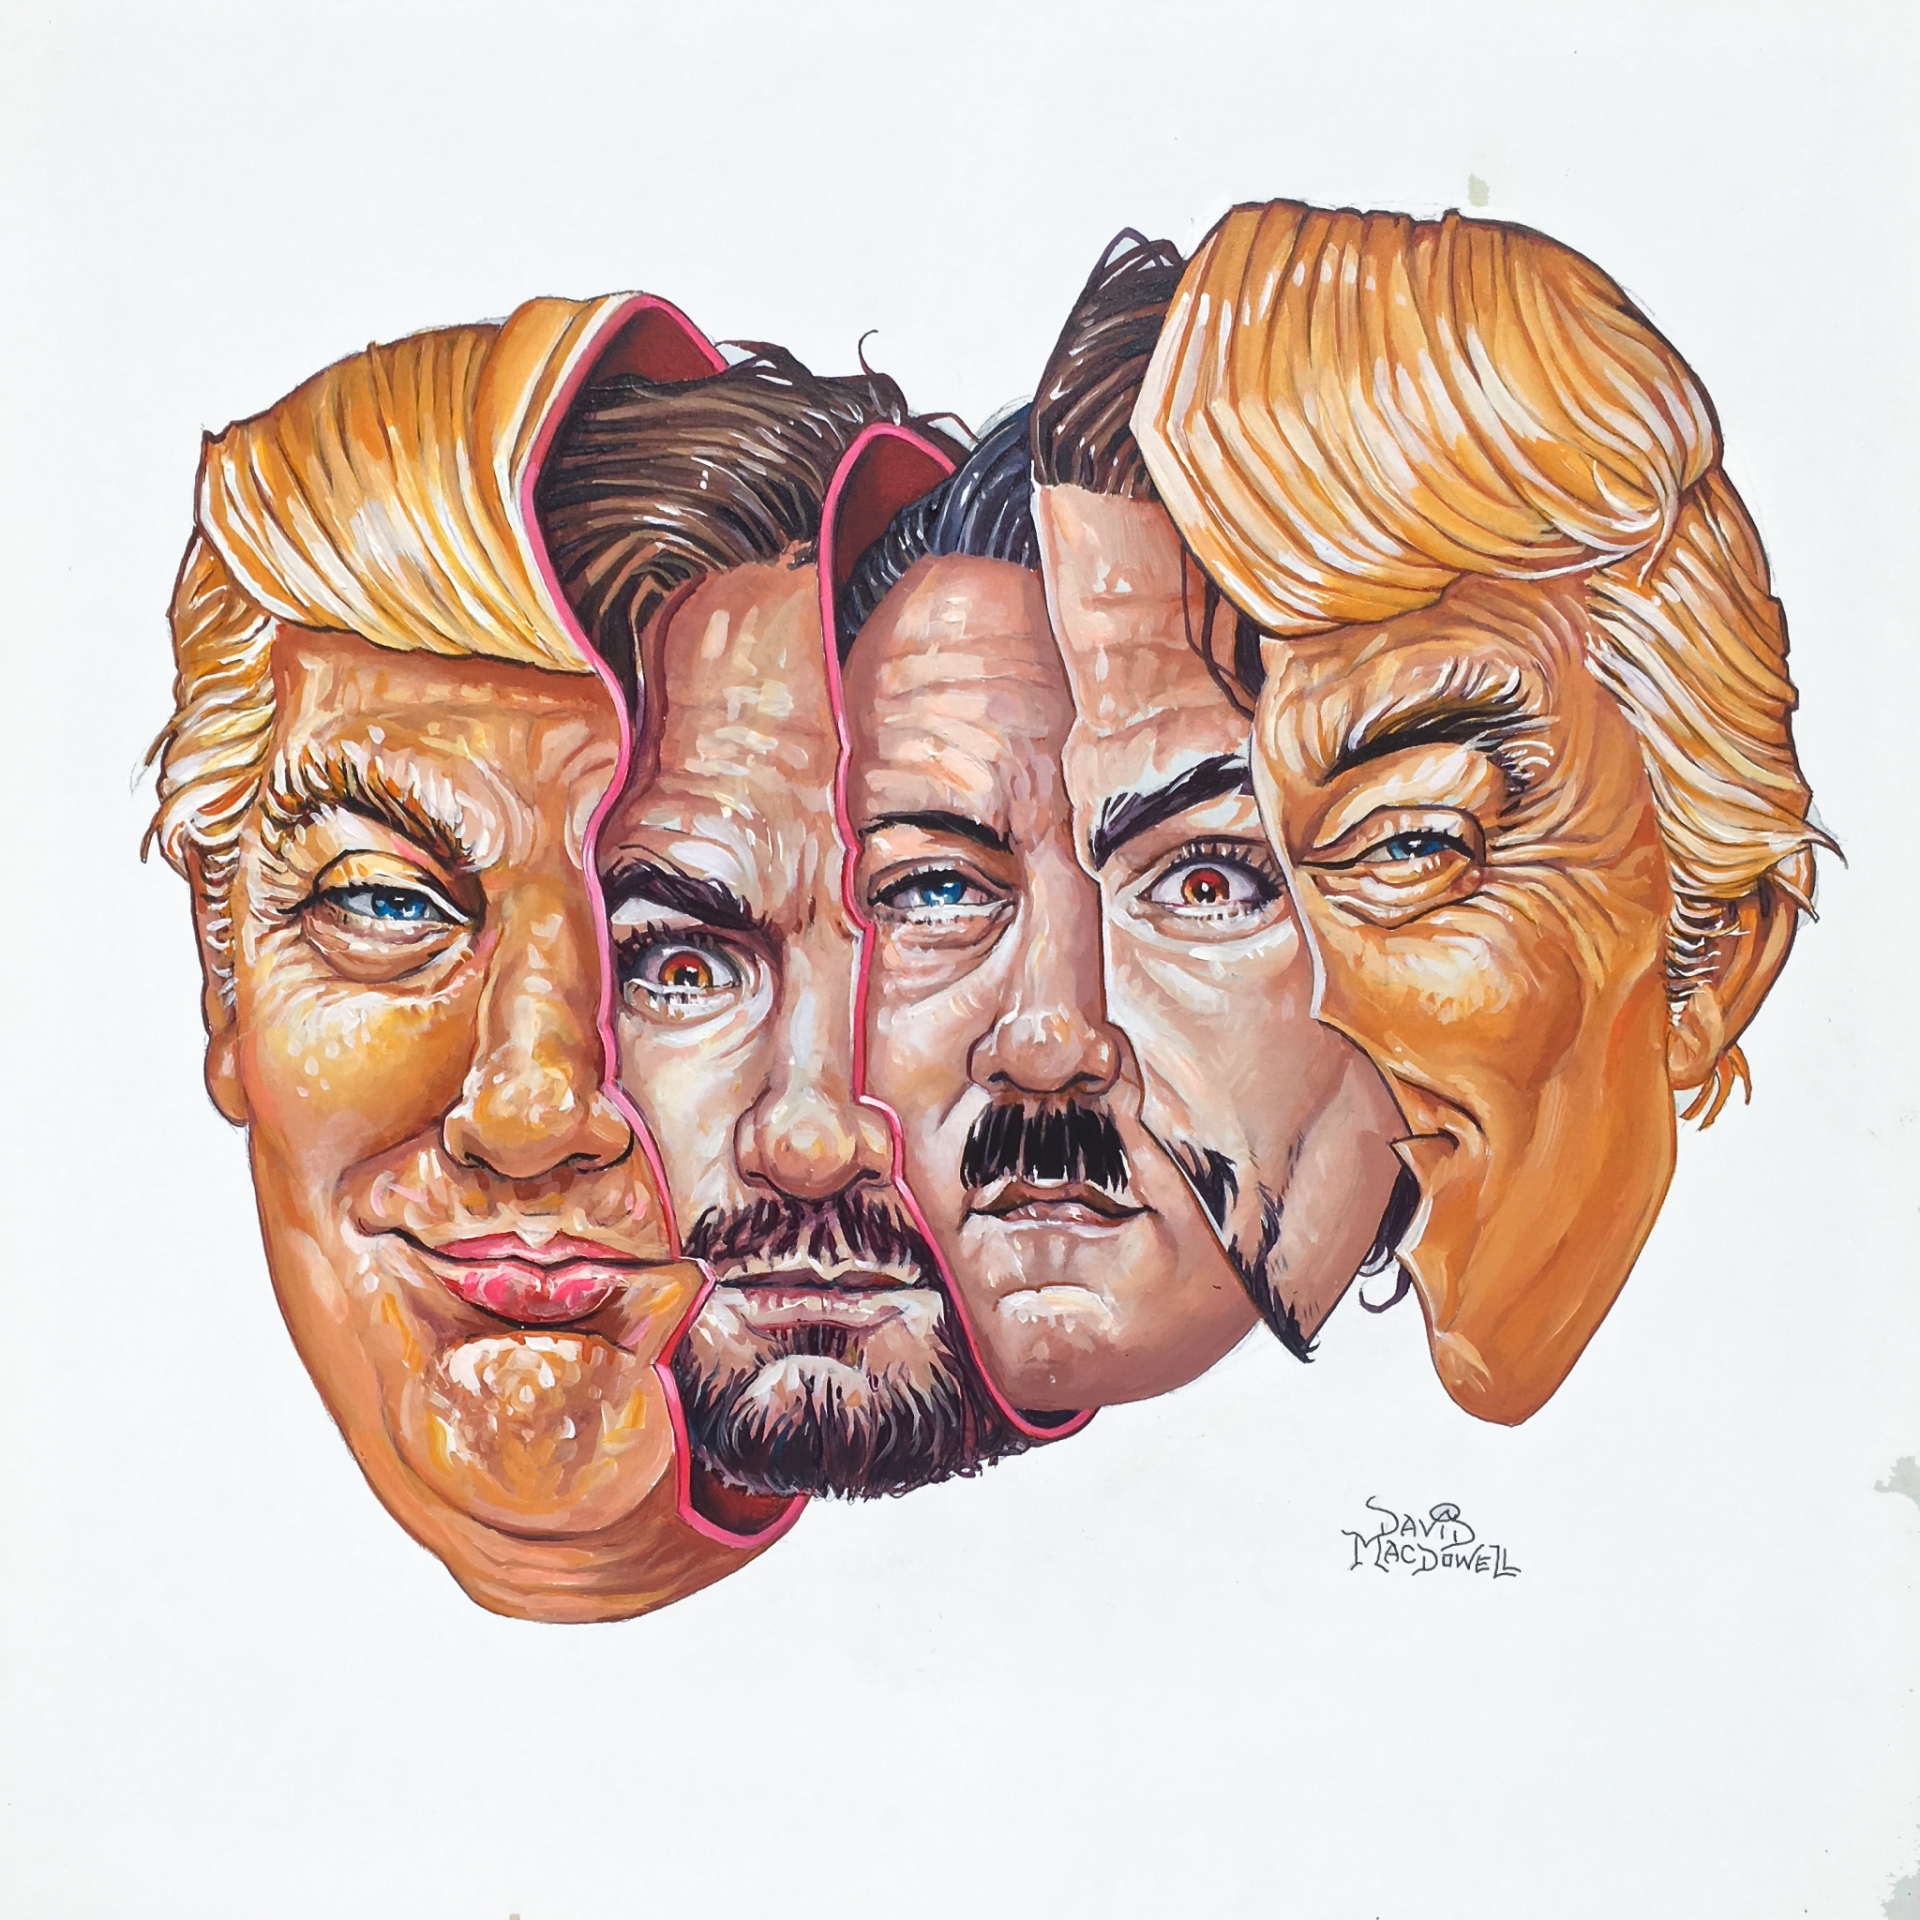 I Want You Inside Me by Dave MacDowell